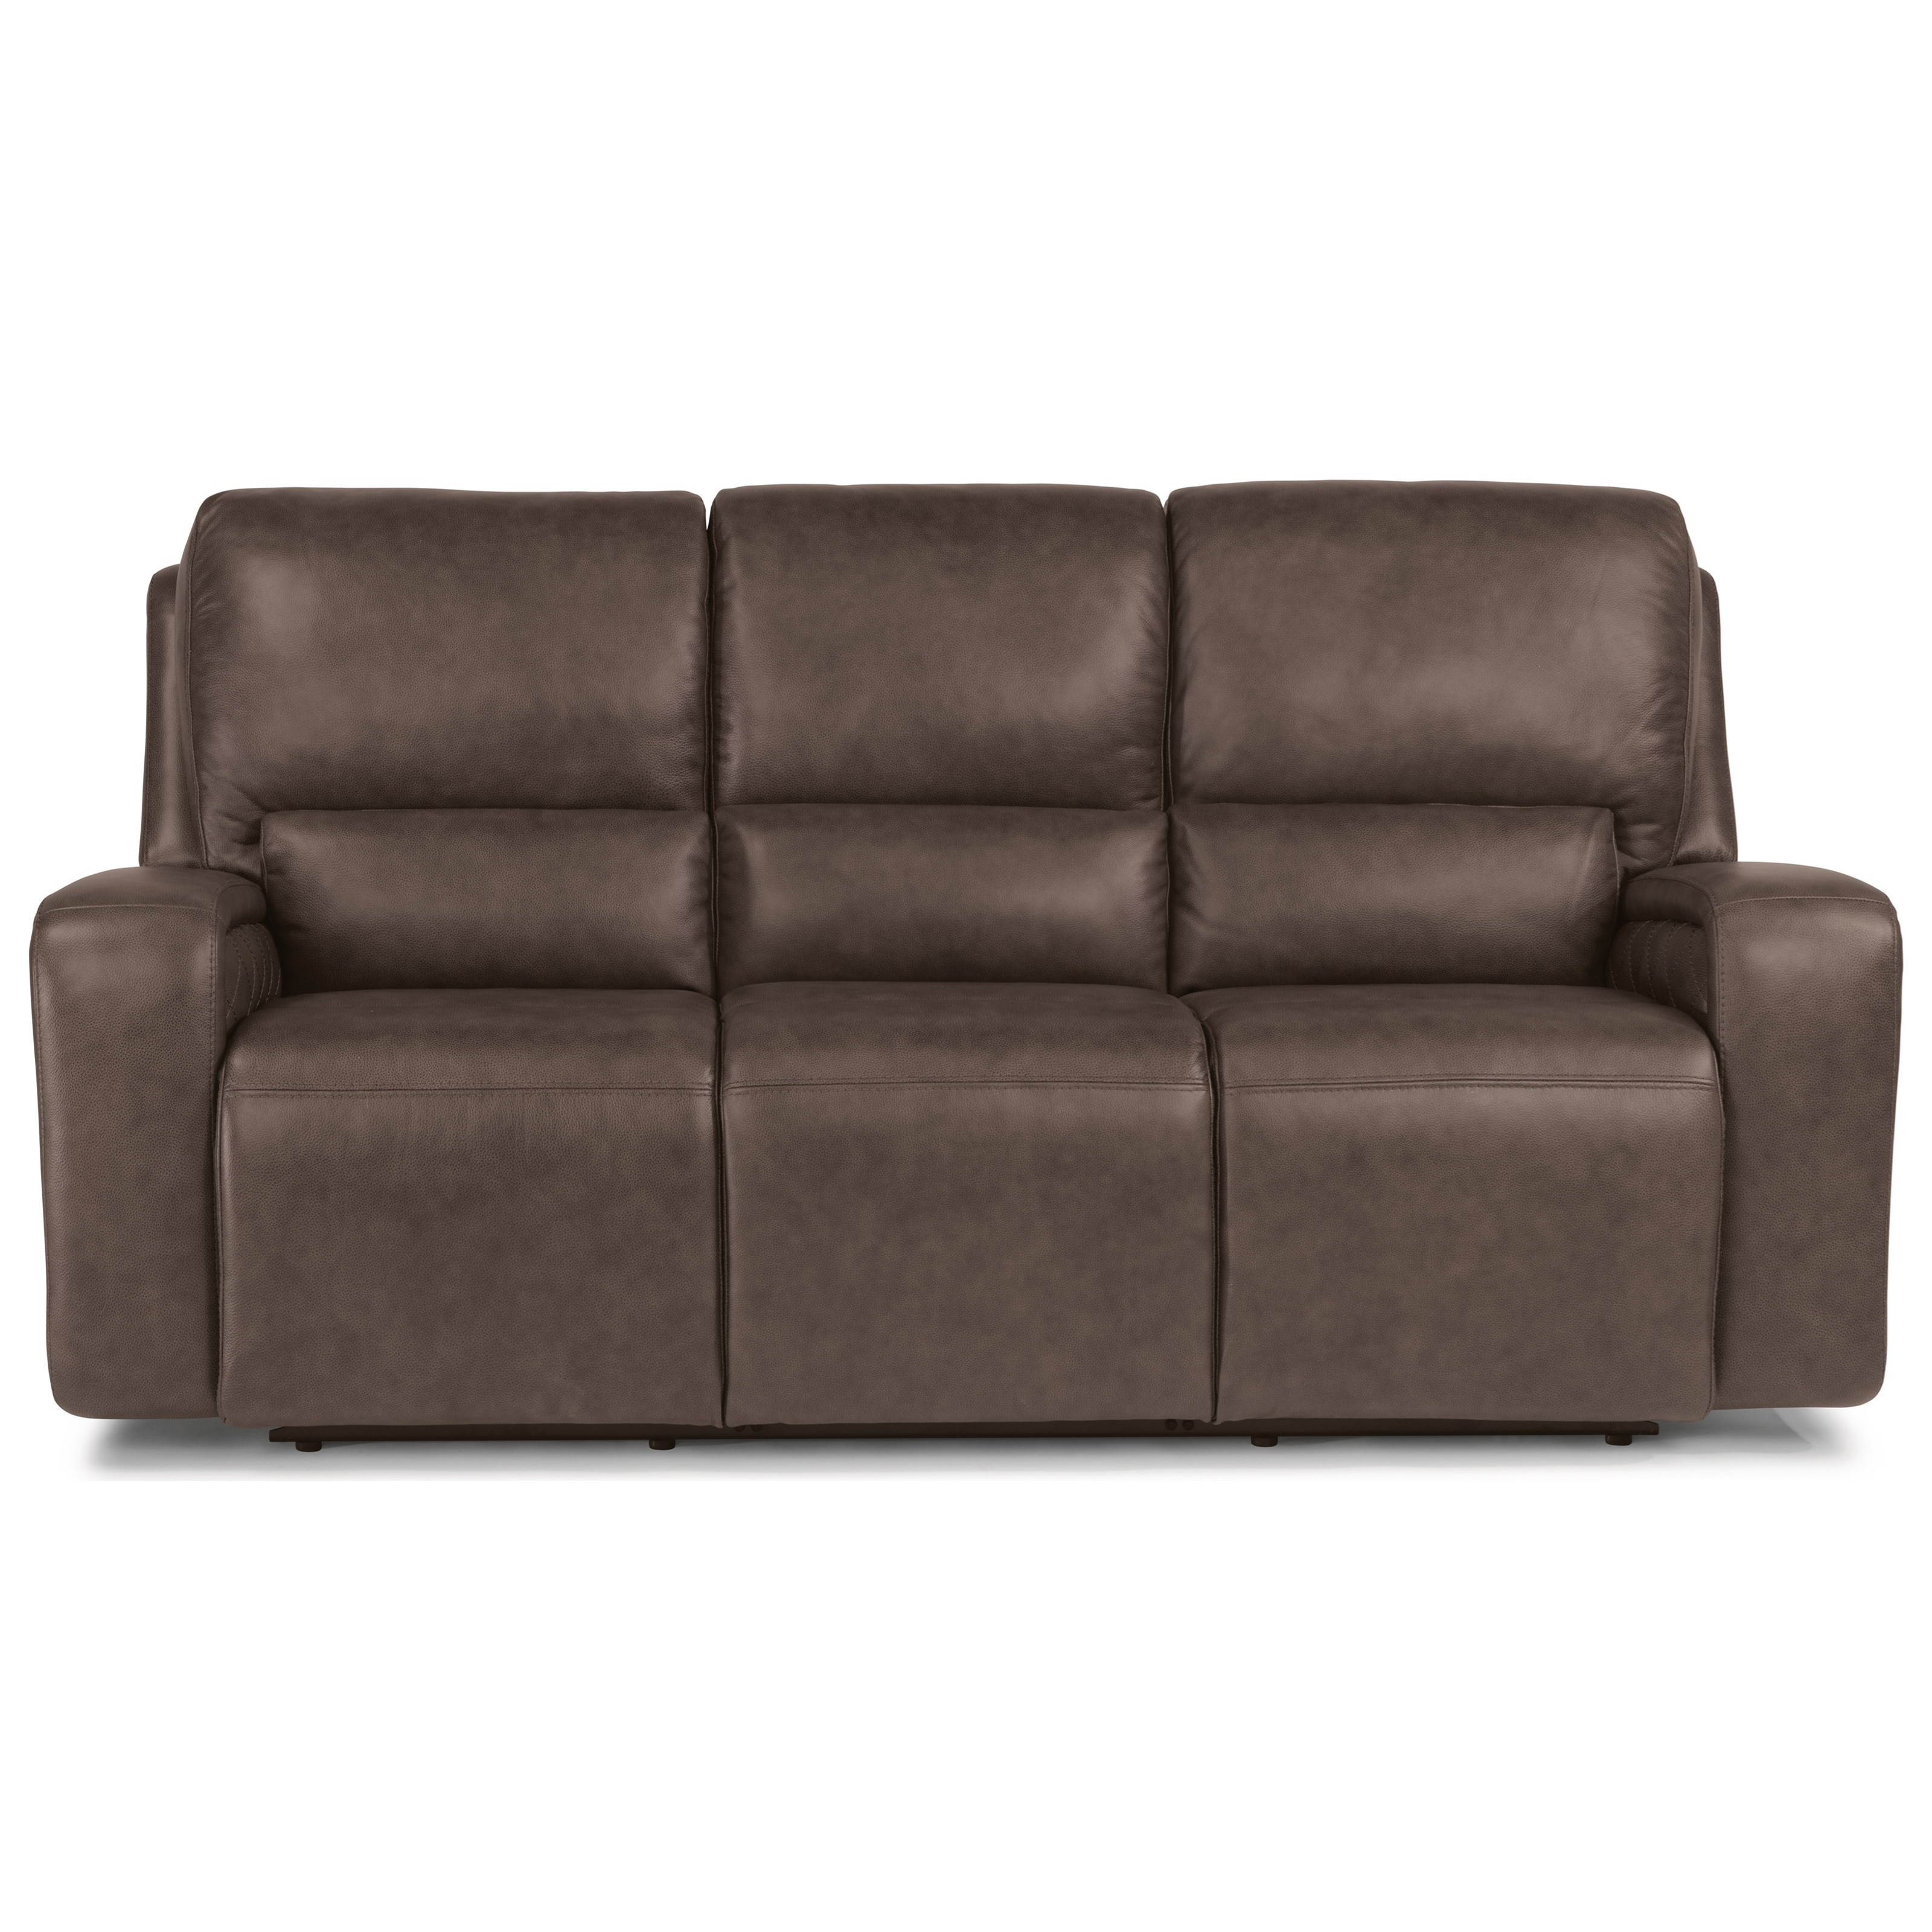 Latitudes - Blade Contemporary Power Reclining Sofa with Power Headrests by  Flexsteel at Rooms and Rest